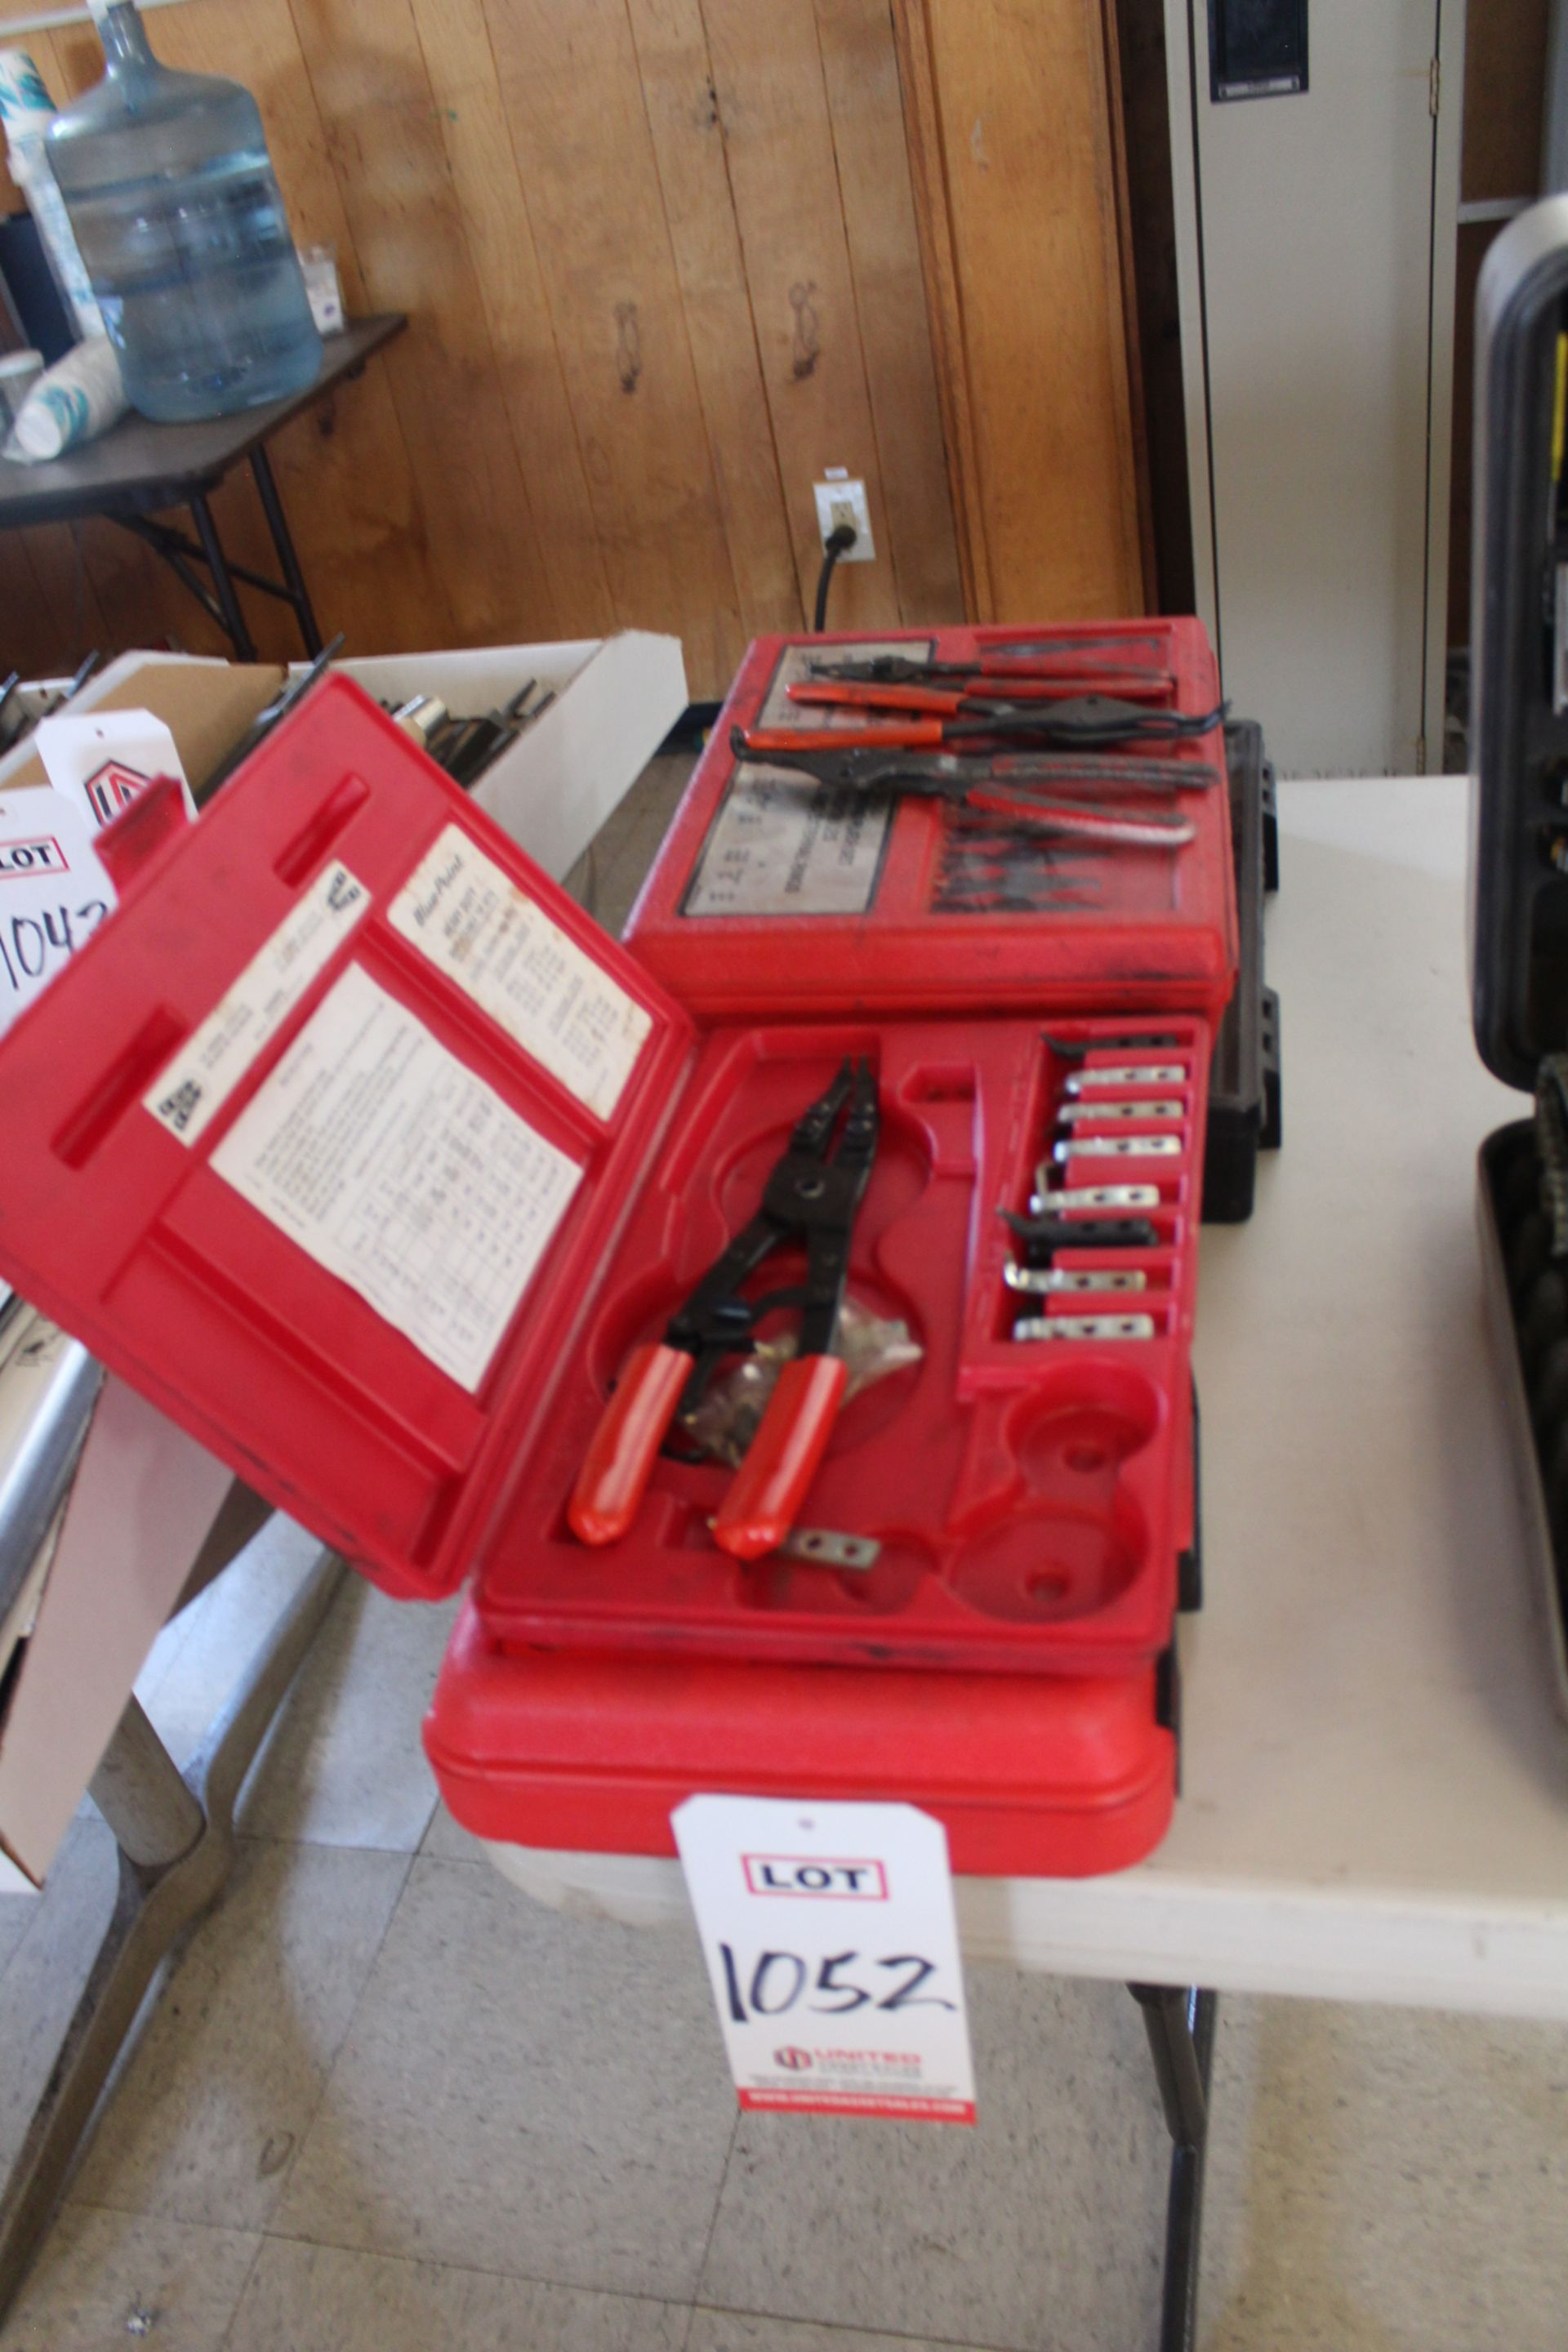 Lot 1052 - LOT - RETAINING RING PLIERS, (LUNCHROOM)